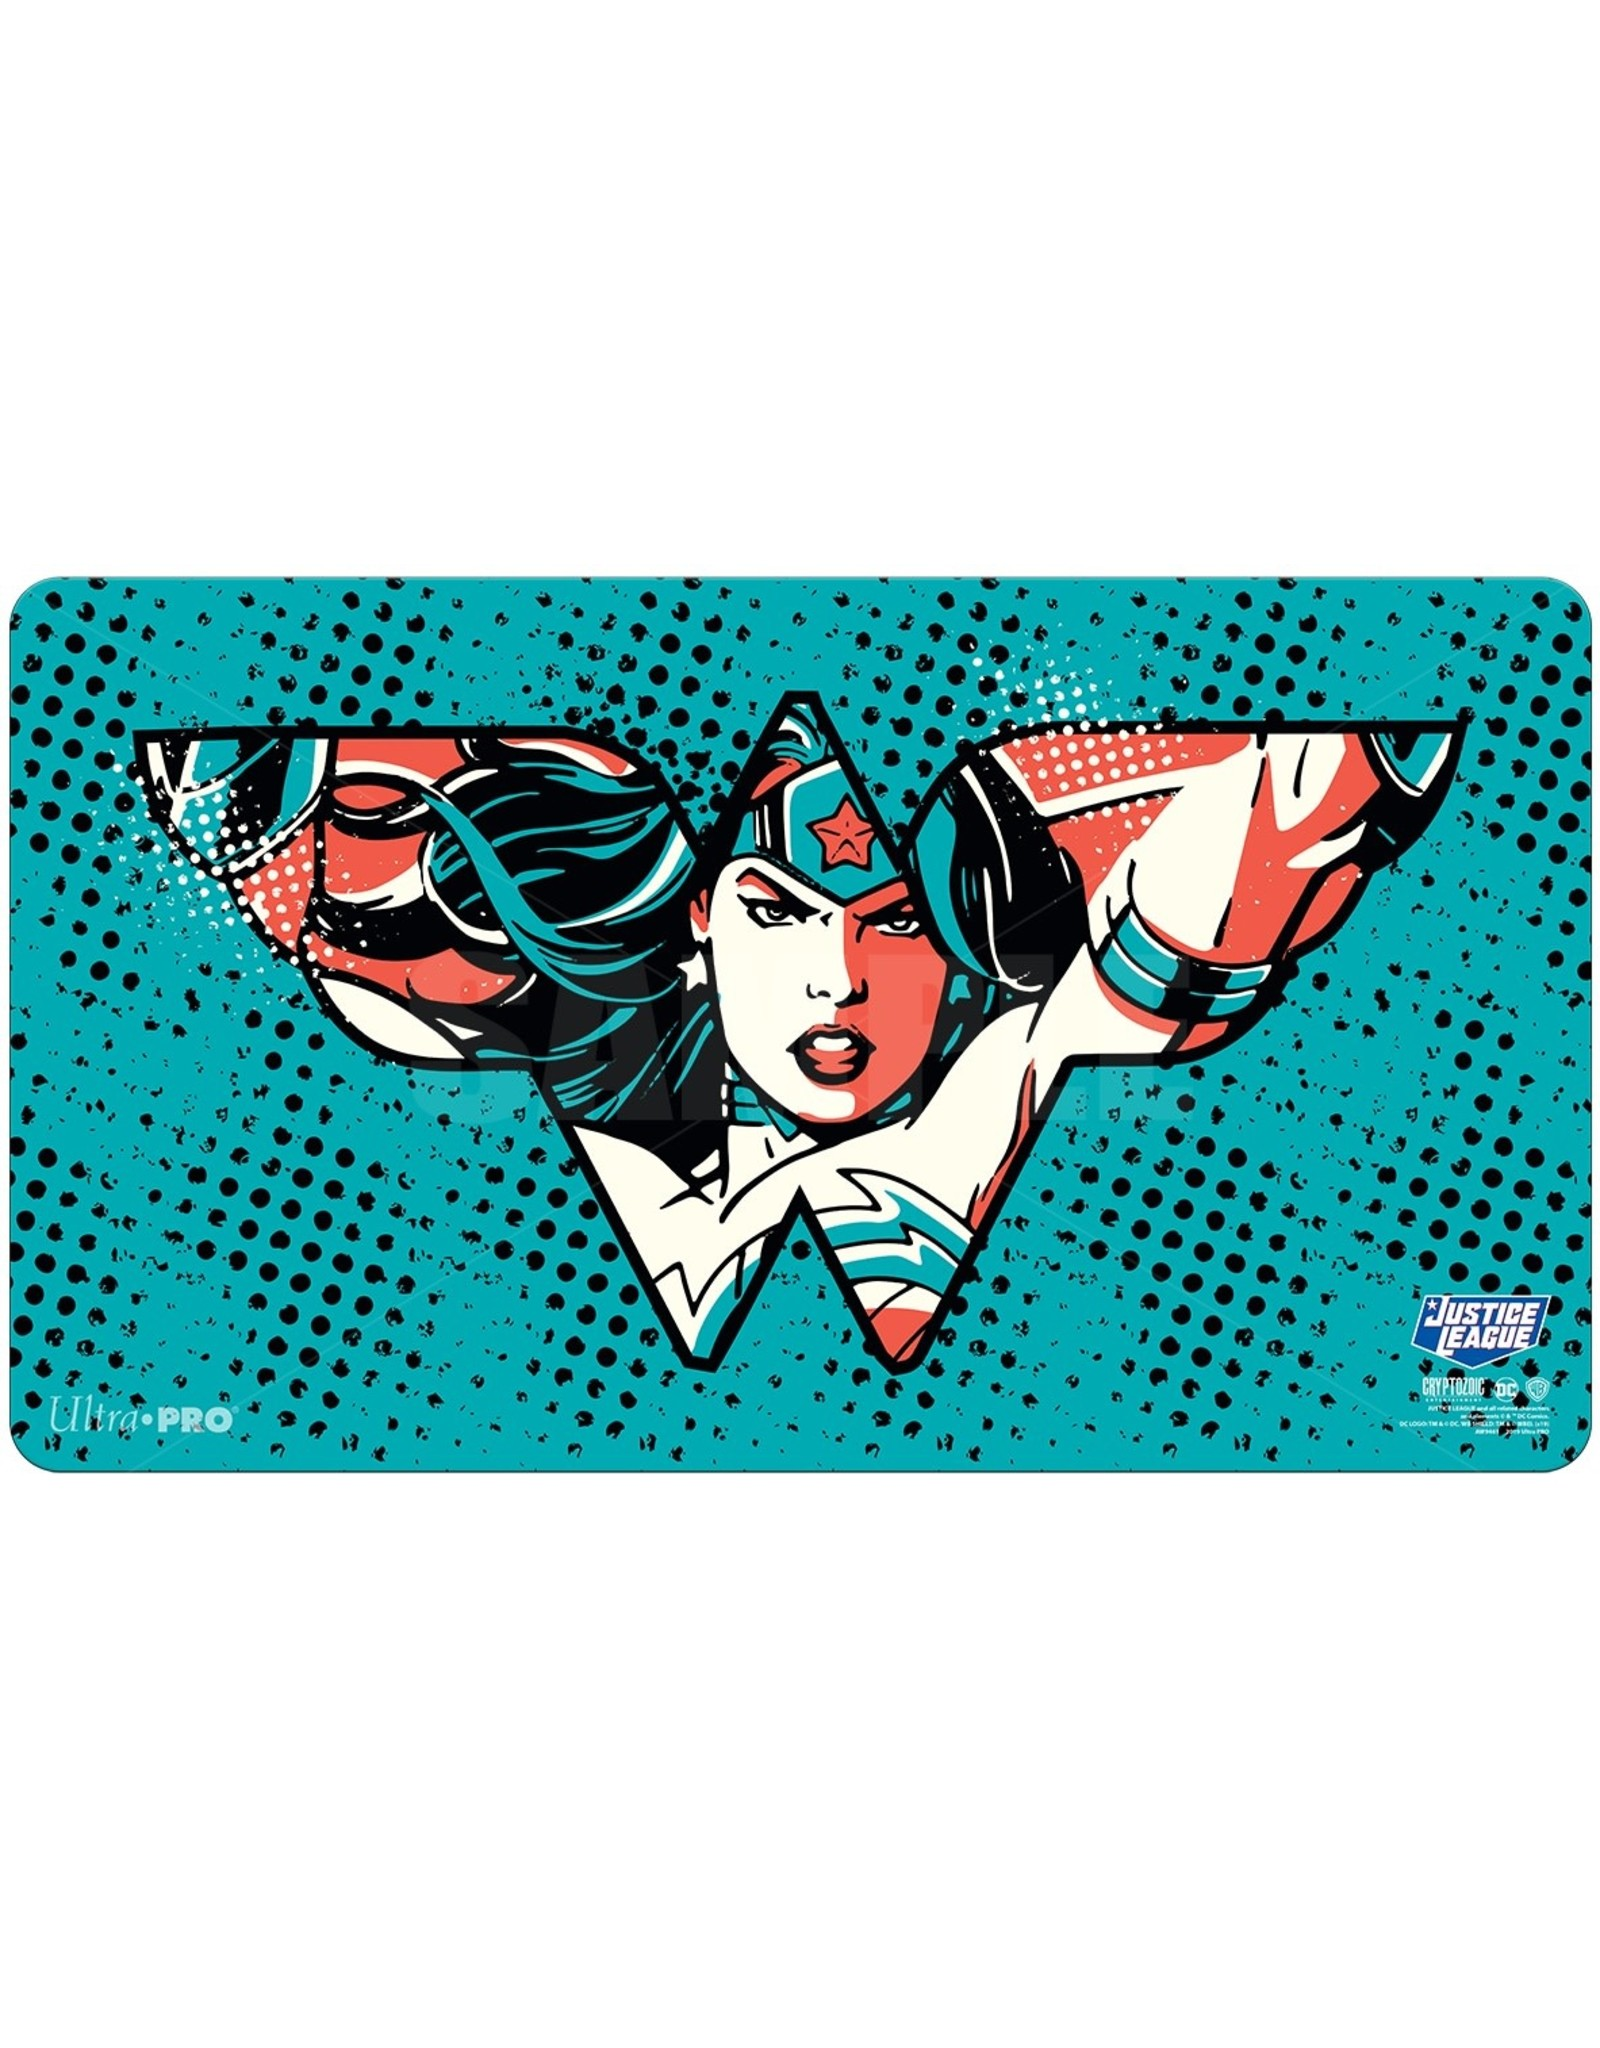 Ultra Pro Justice League: Playmat - Wonder Woman